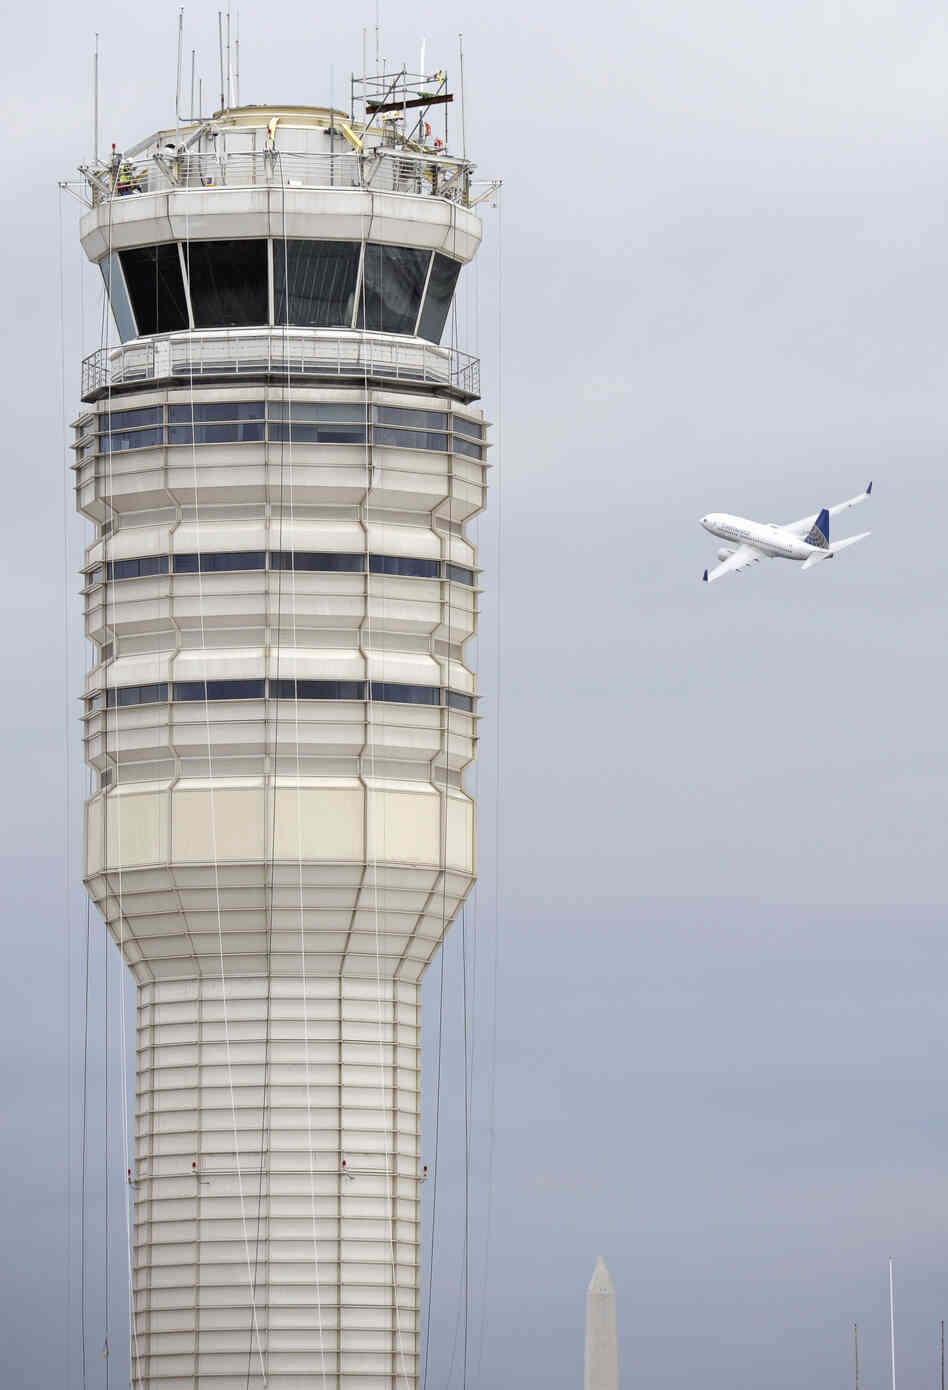 A passenger jet flies past the FAA c